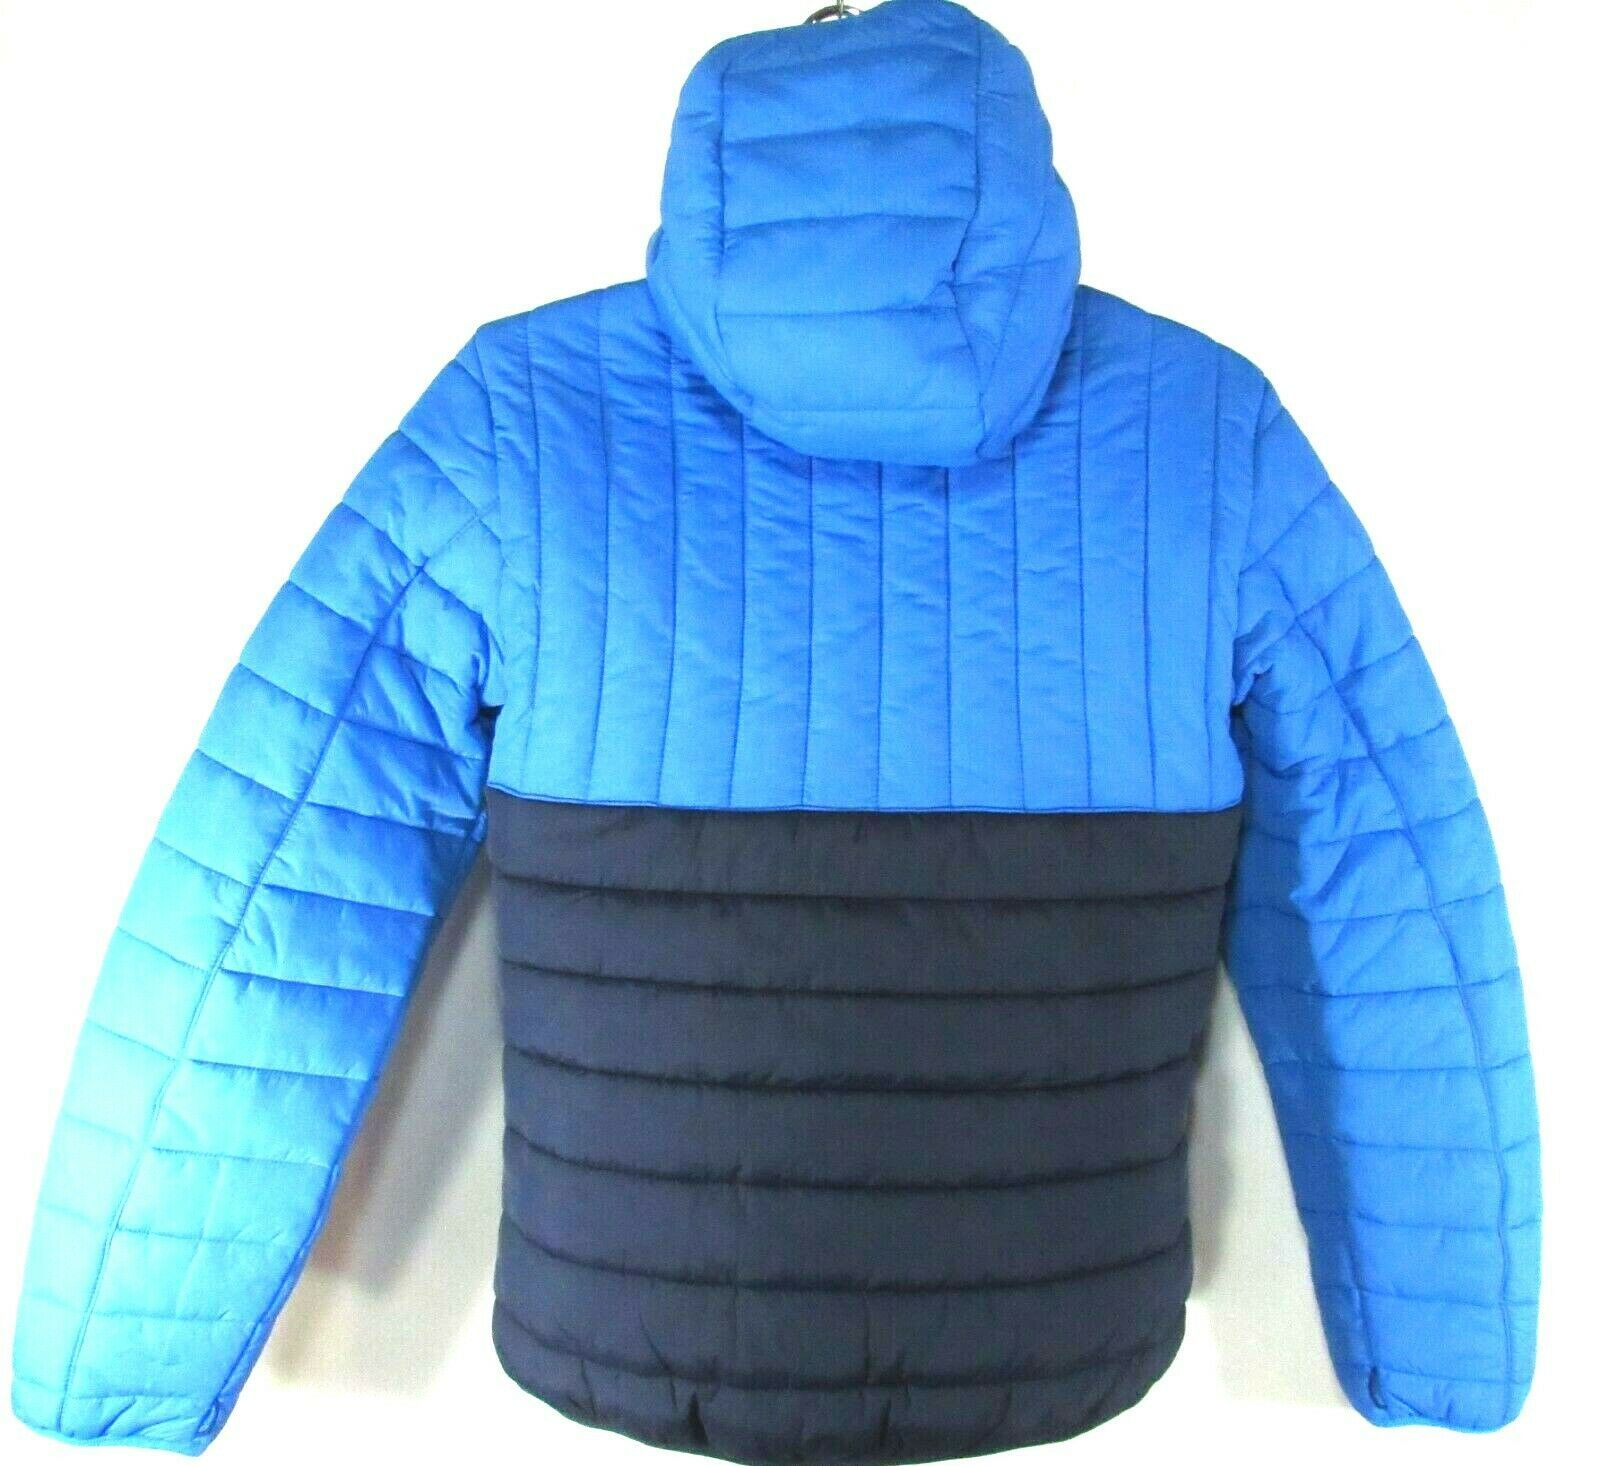 TIMBERLAND A1MZU-S62 MEN'S NAVY/BLUE QUILTED PUFFER lightweight HOODED JACKET